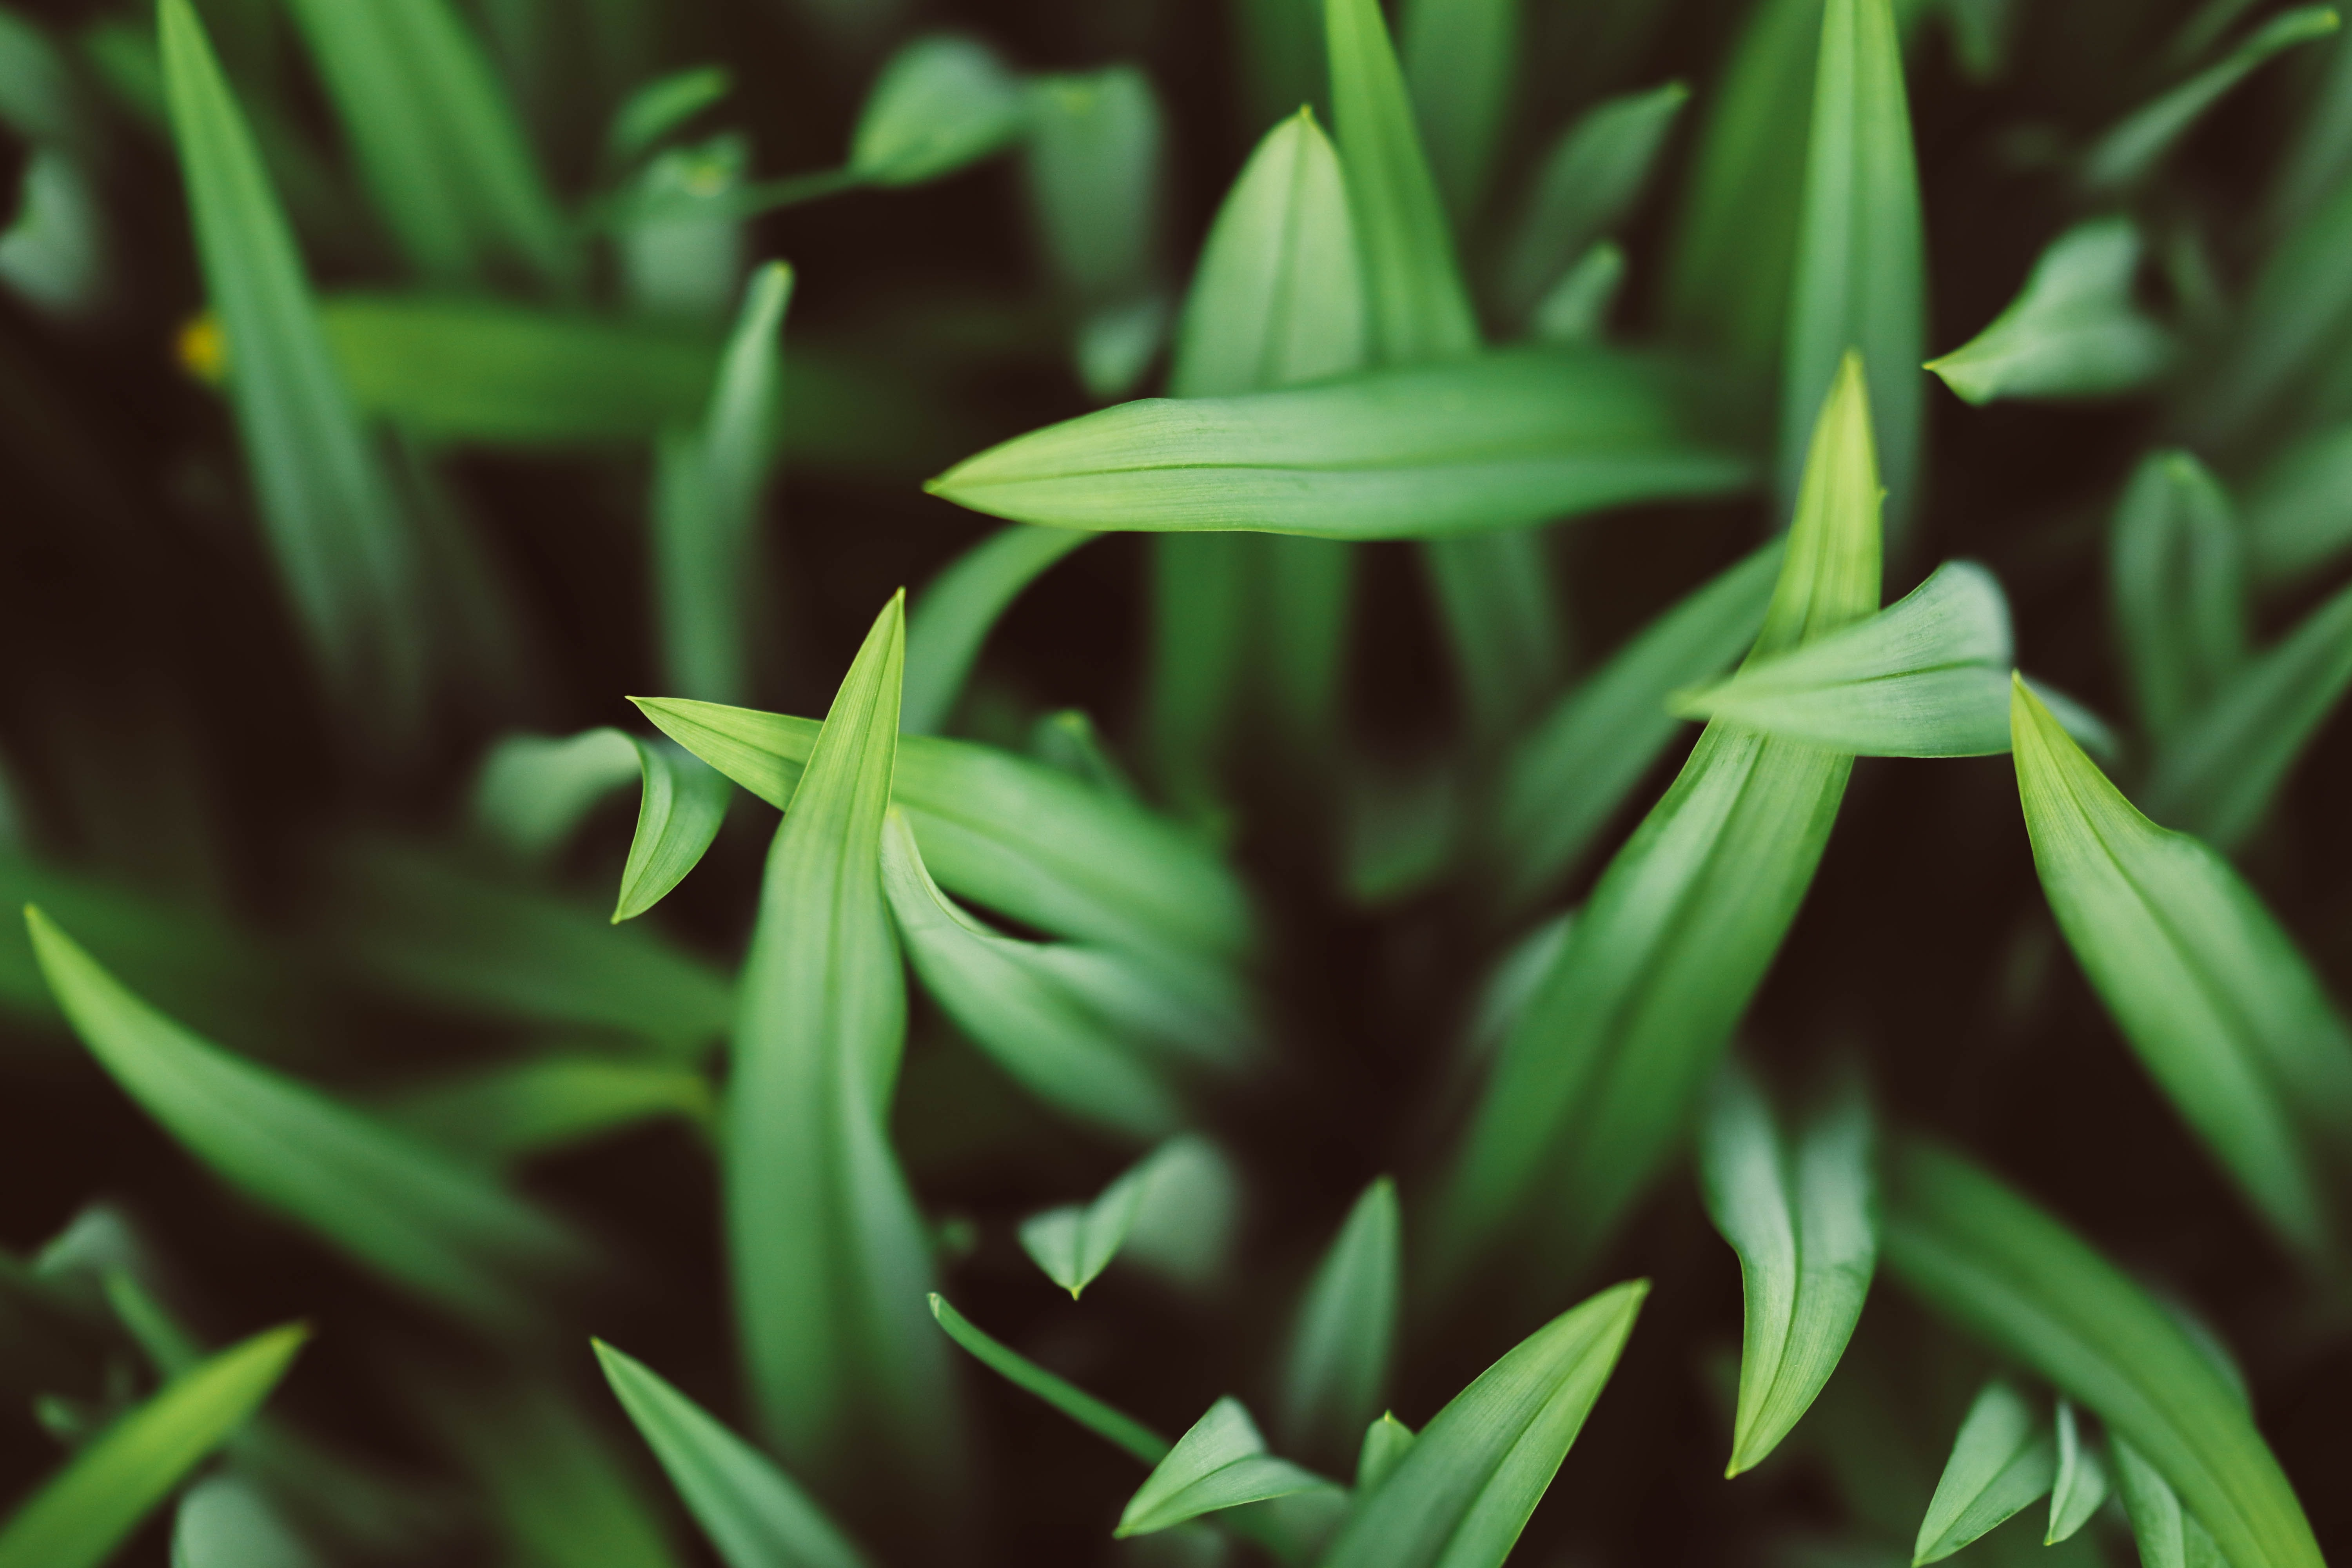 selective focus photography of green grasses